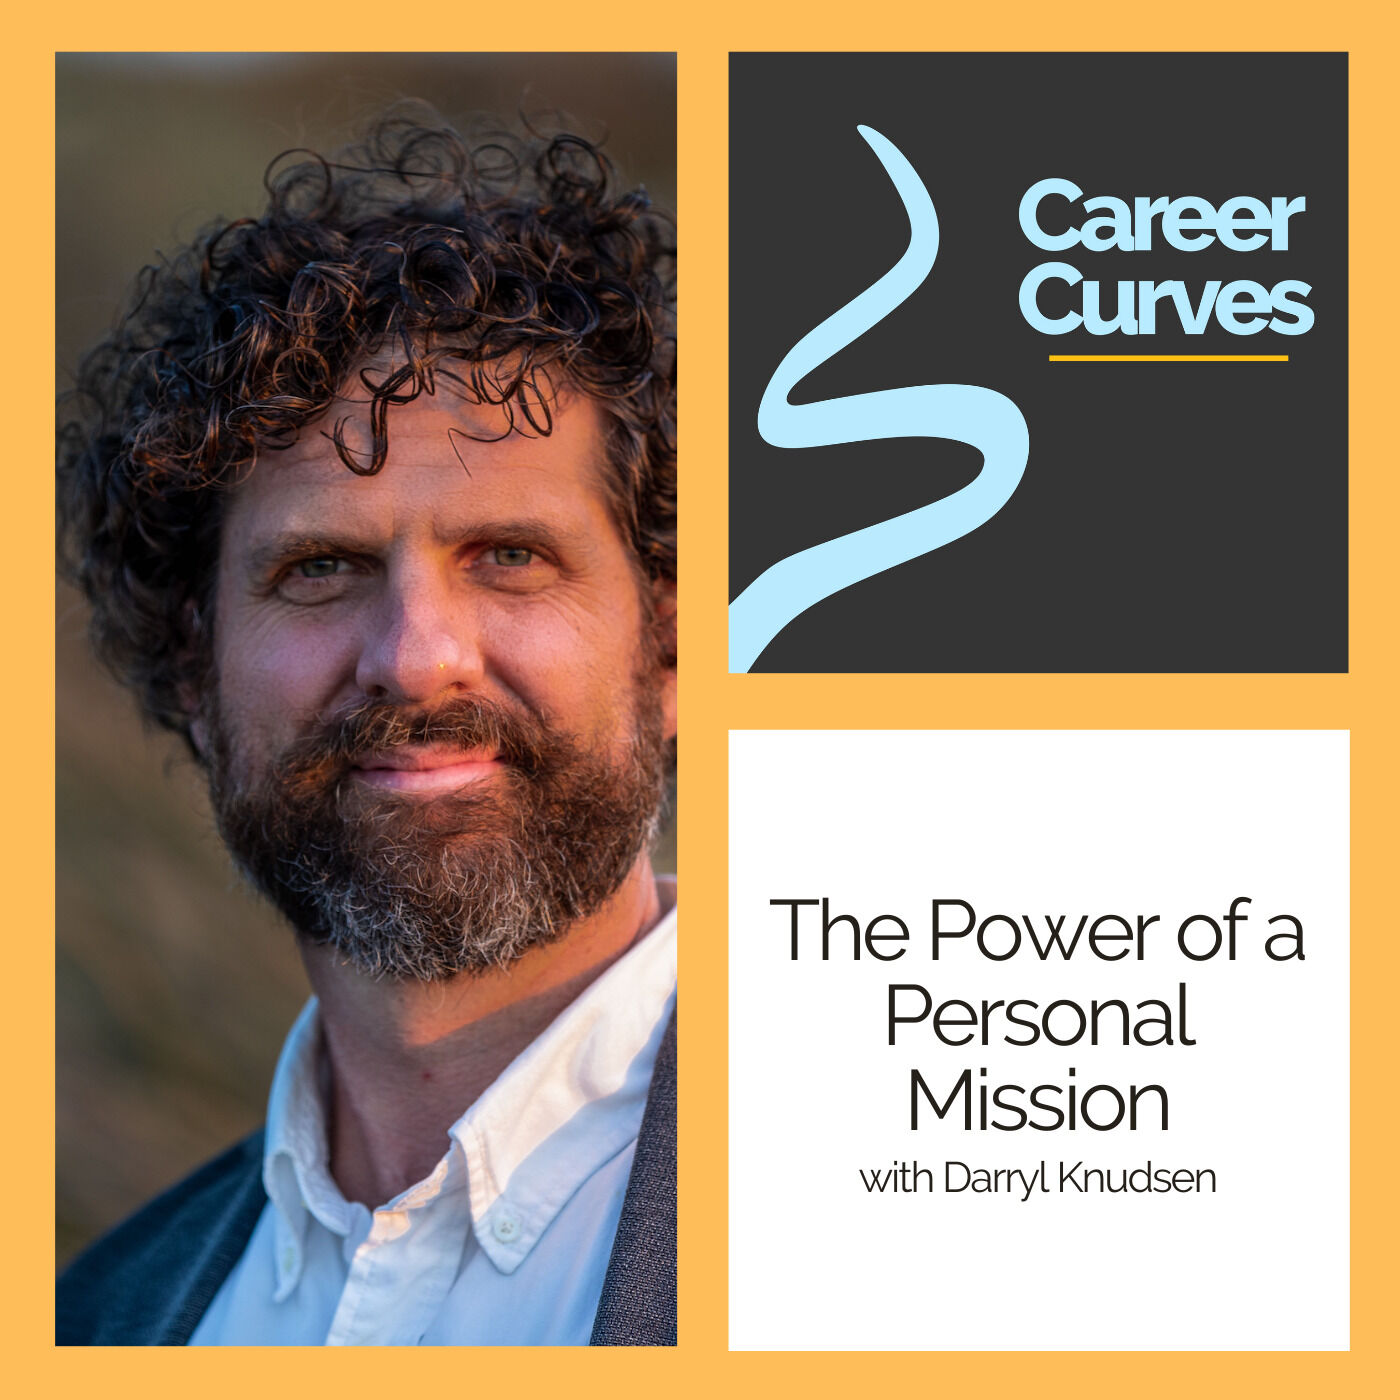 The Power of a Personal Mission with Darryl Knudsen